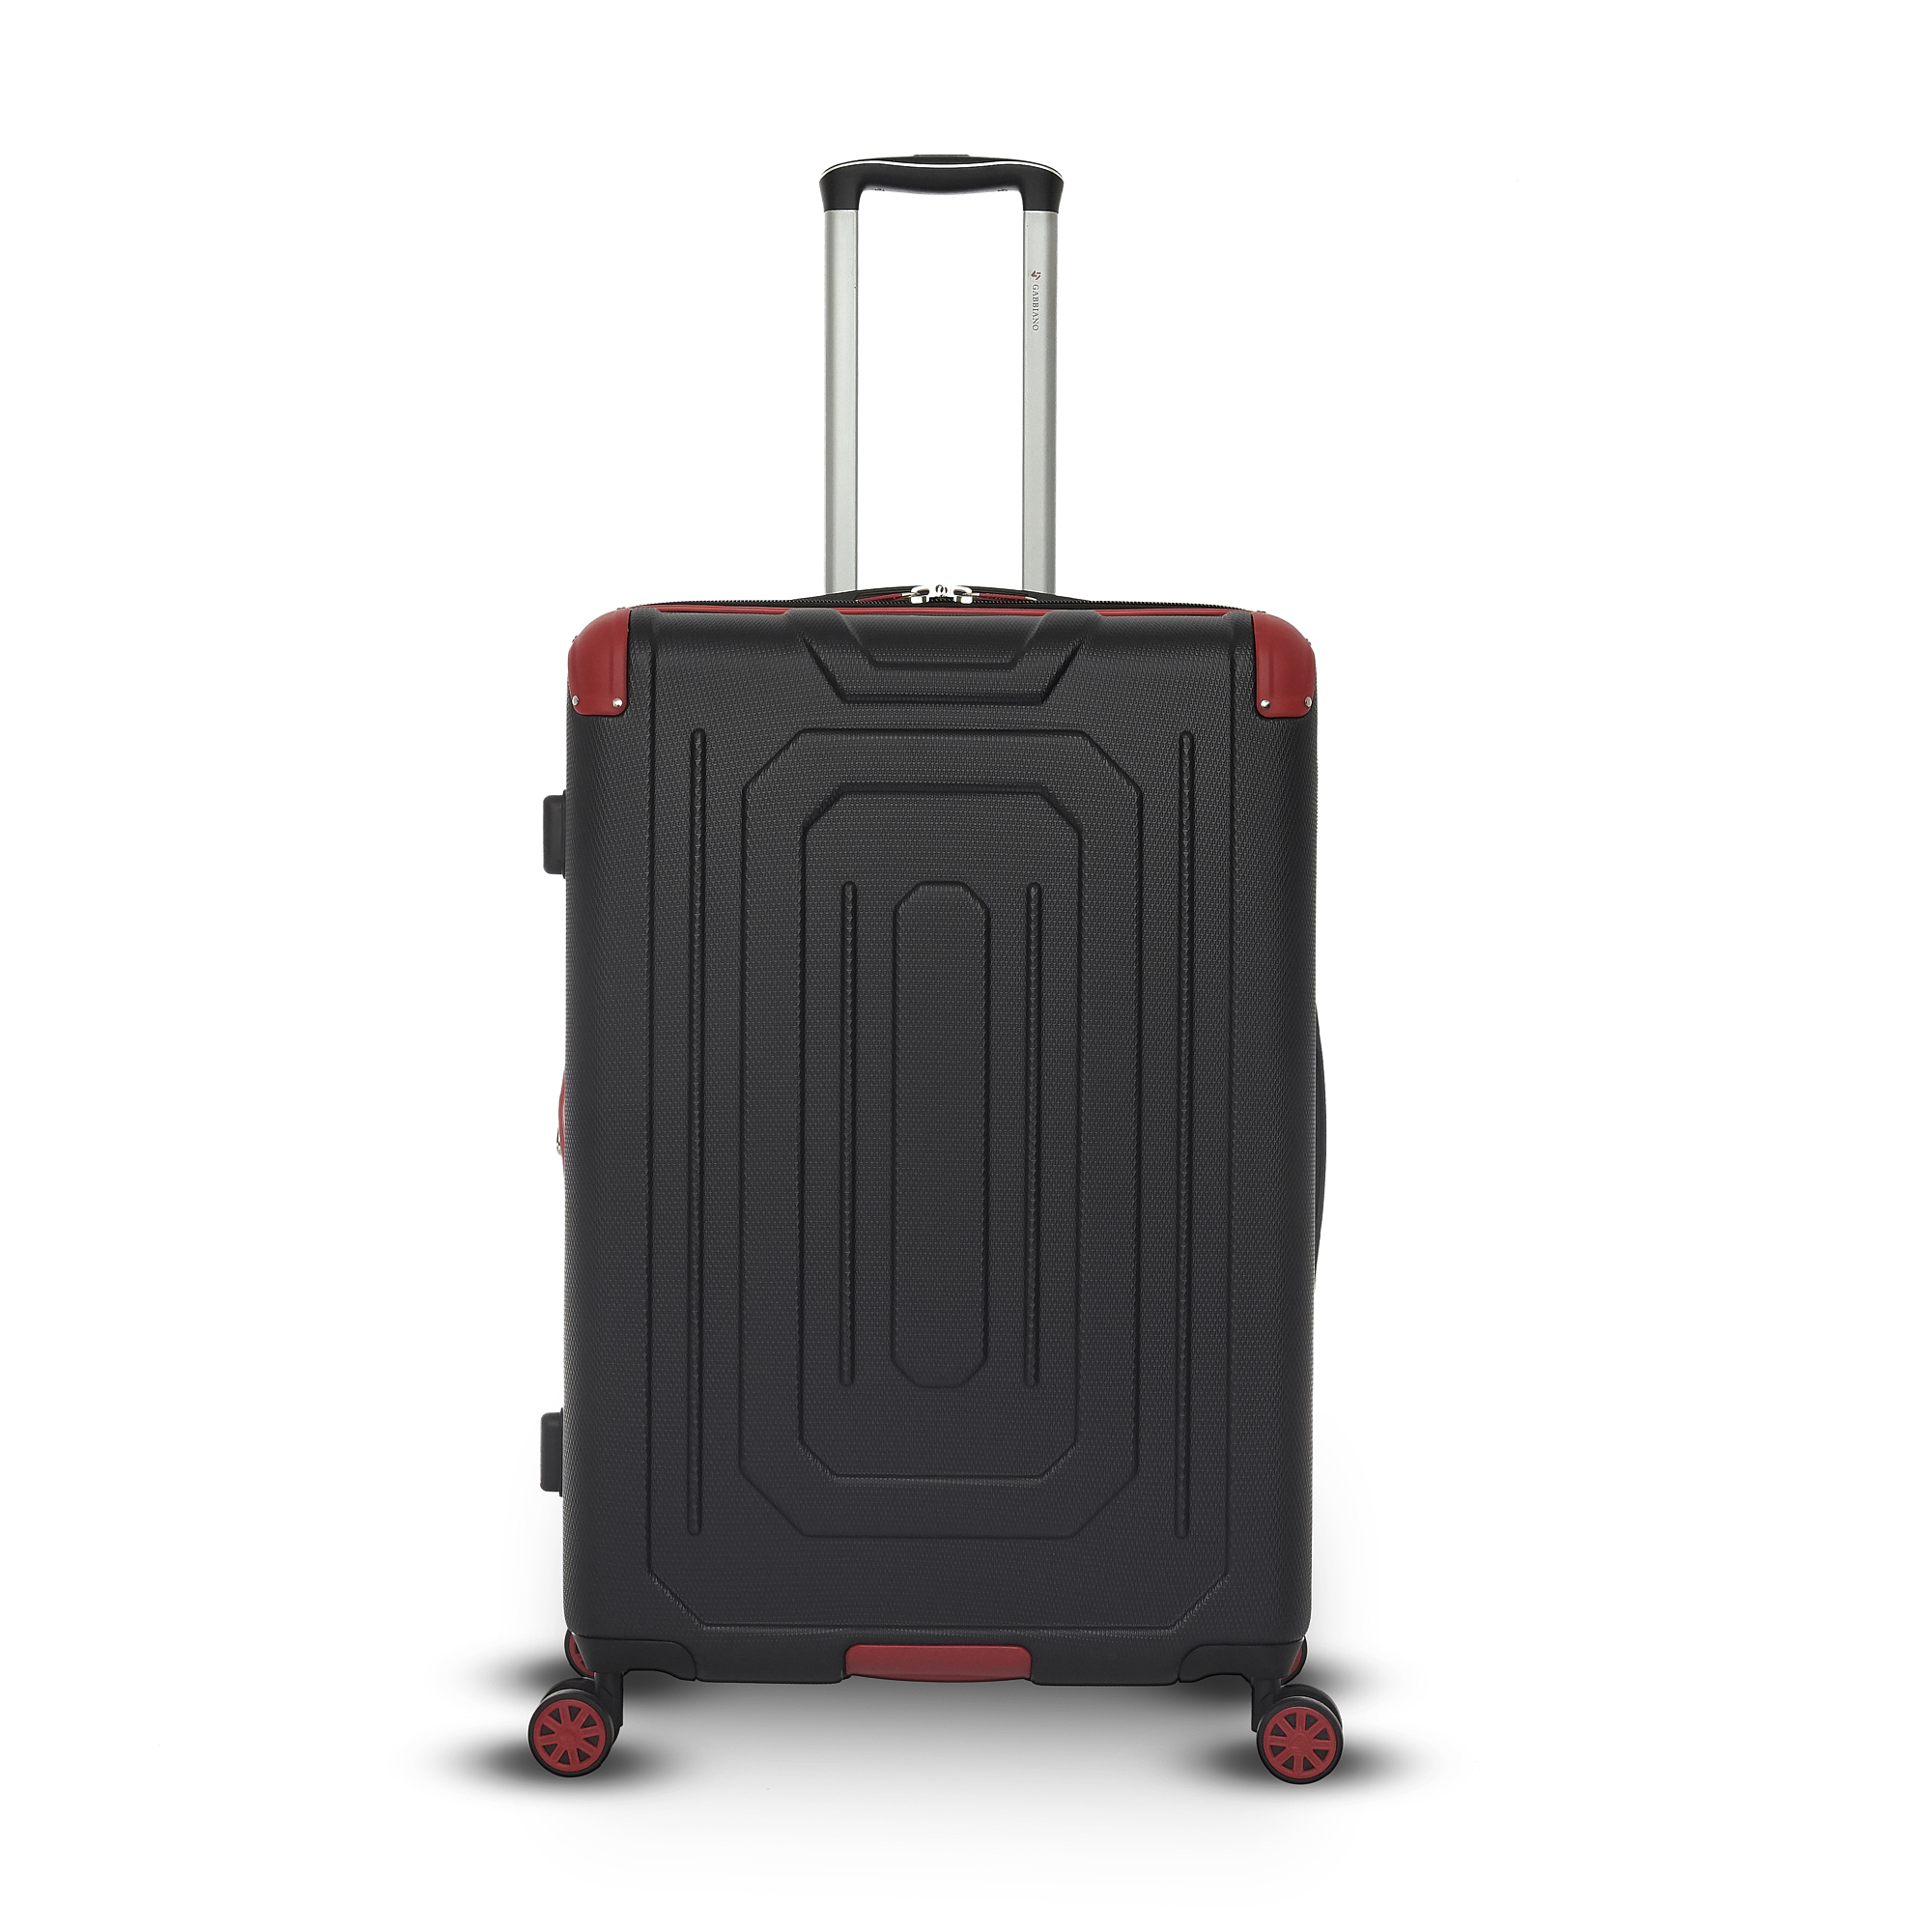 LG_GA2020_Red_Front